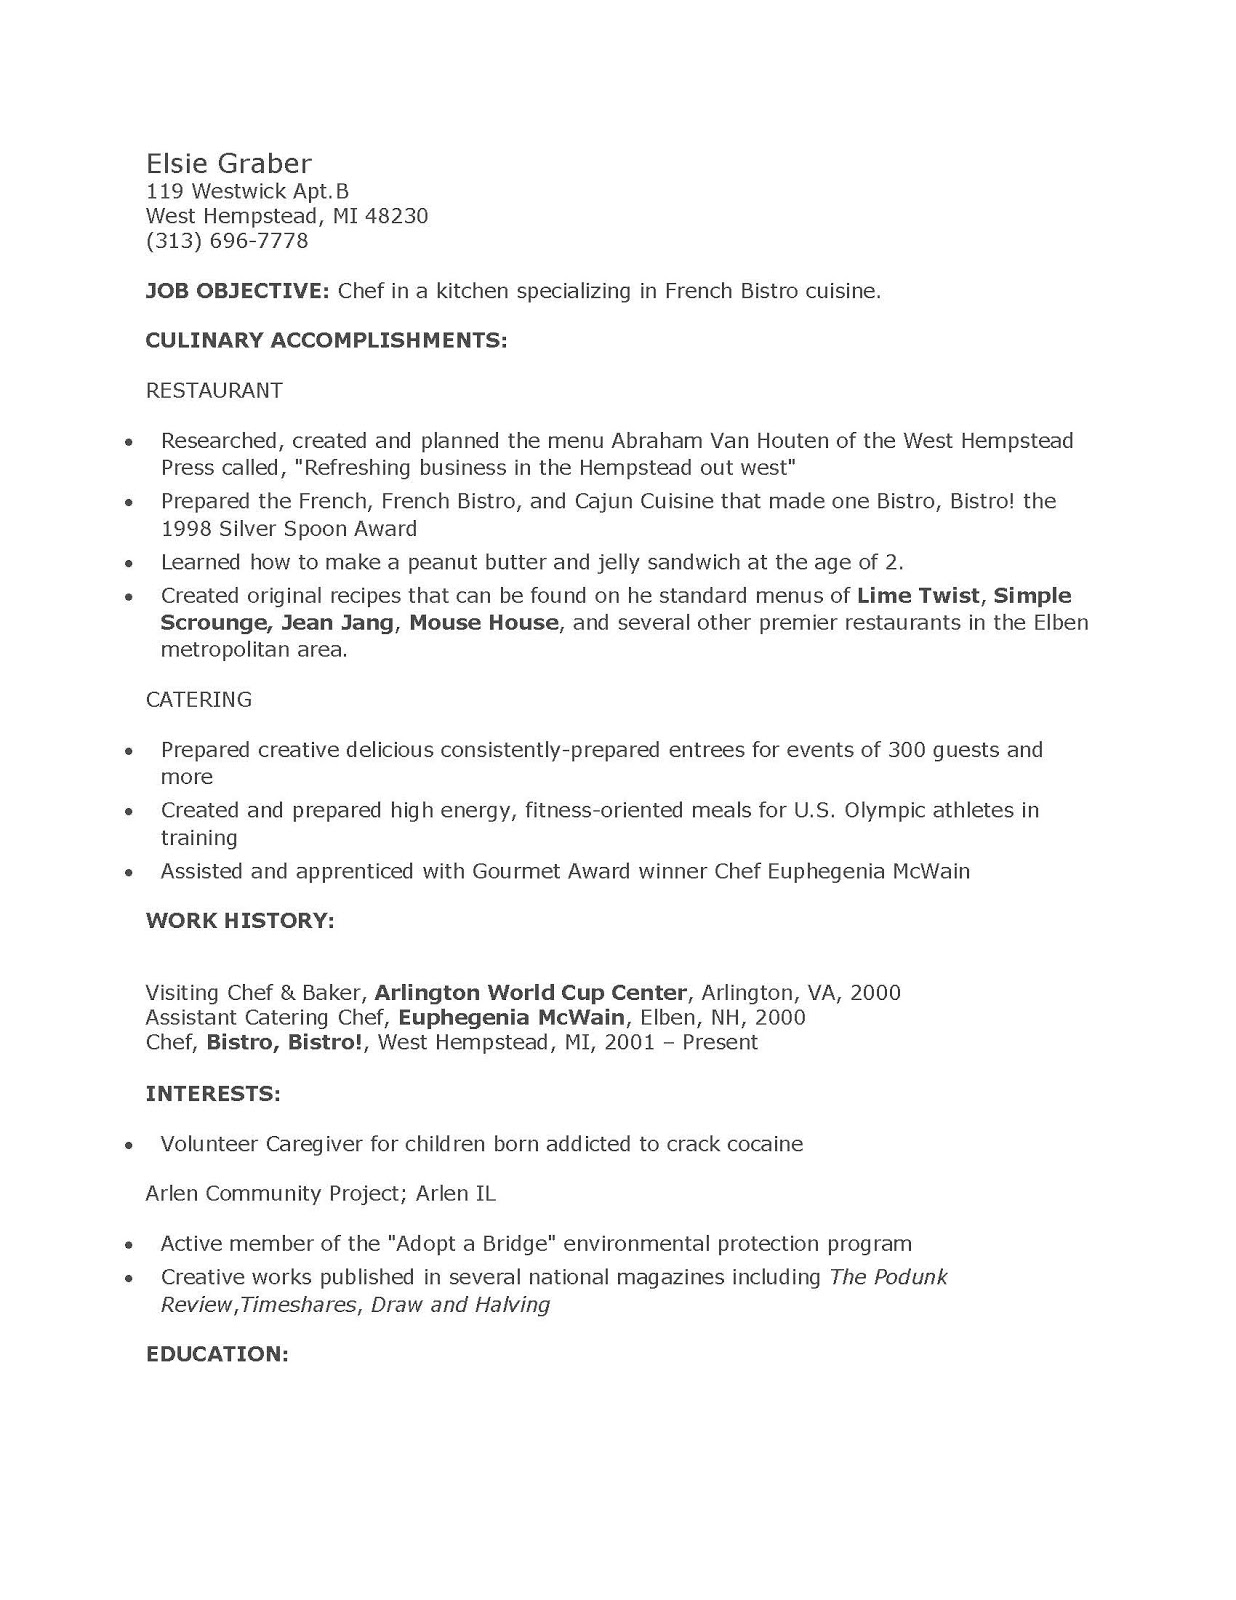 communication skills resume bullets sample resume service communication skills resume bullets 4 communications skills to highlight on your rsum on resume samples organizational